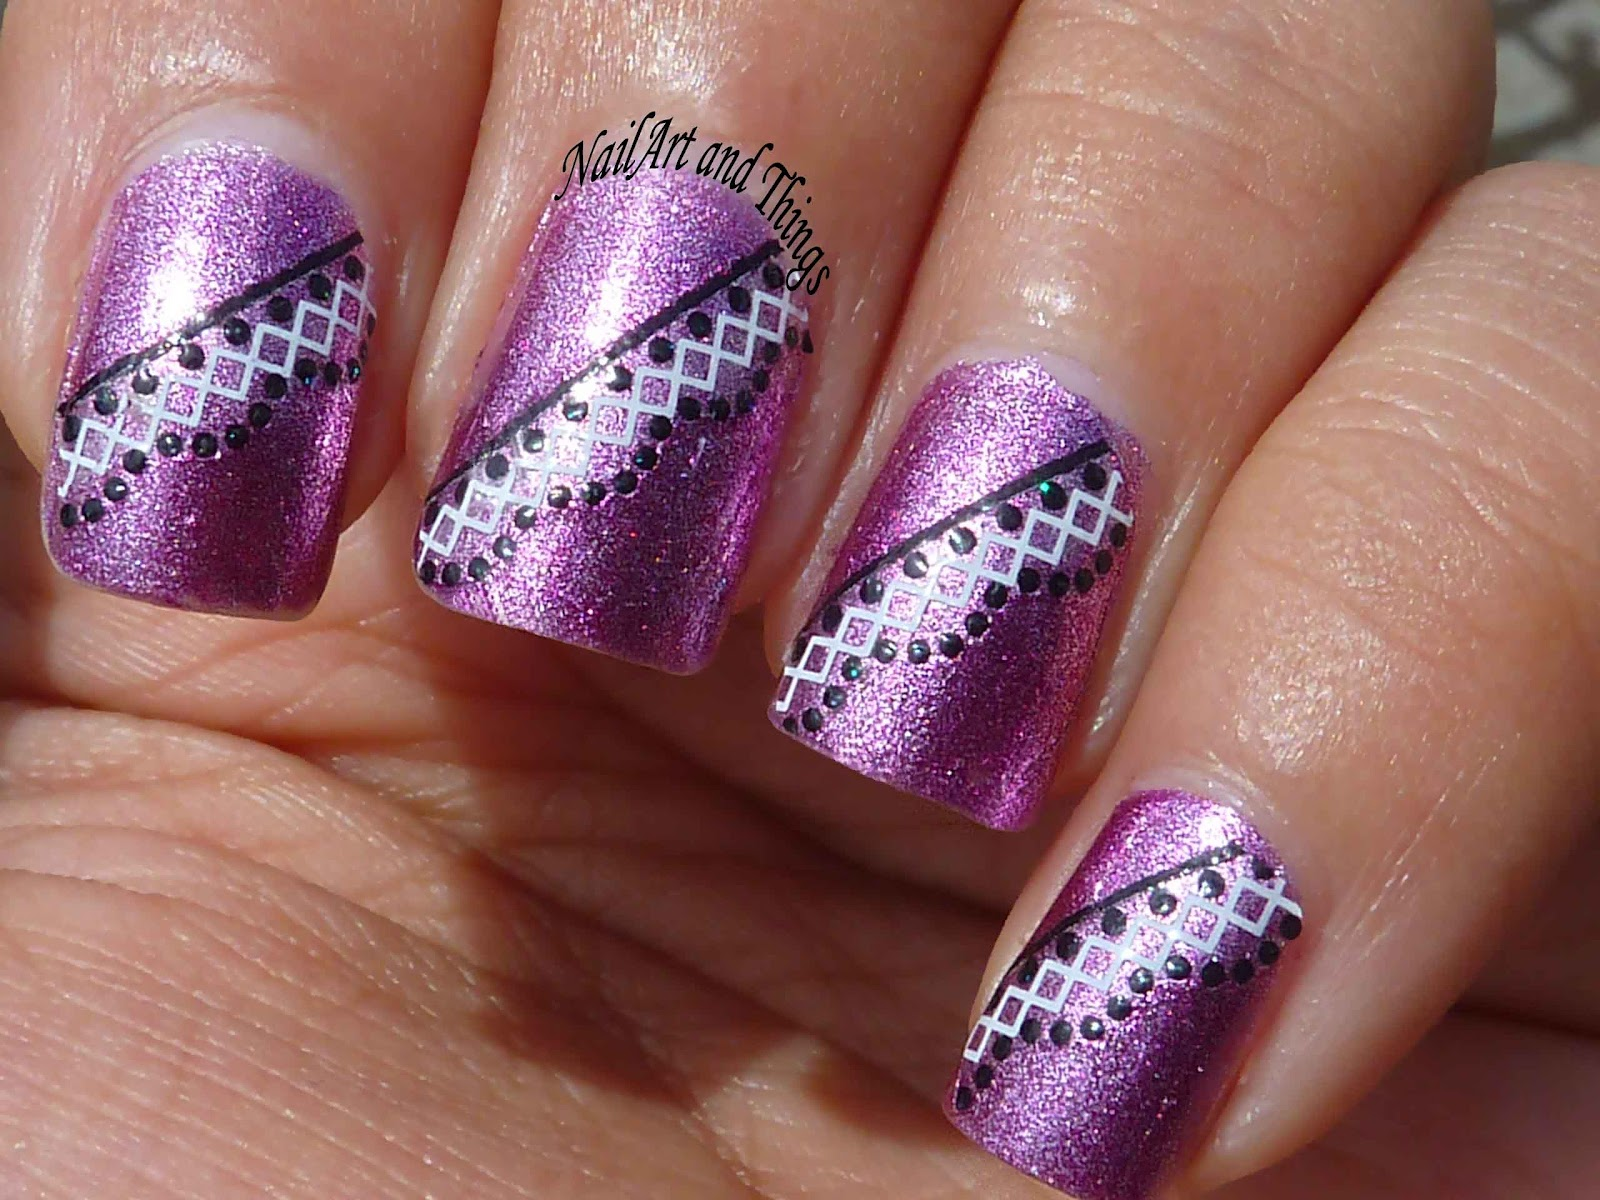 Kategory → Nail Art » Nail Art » The Best Art